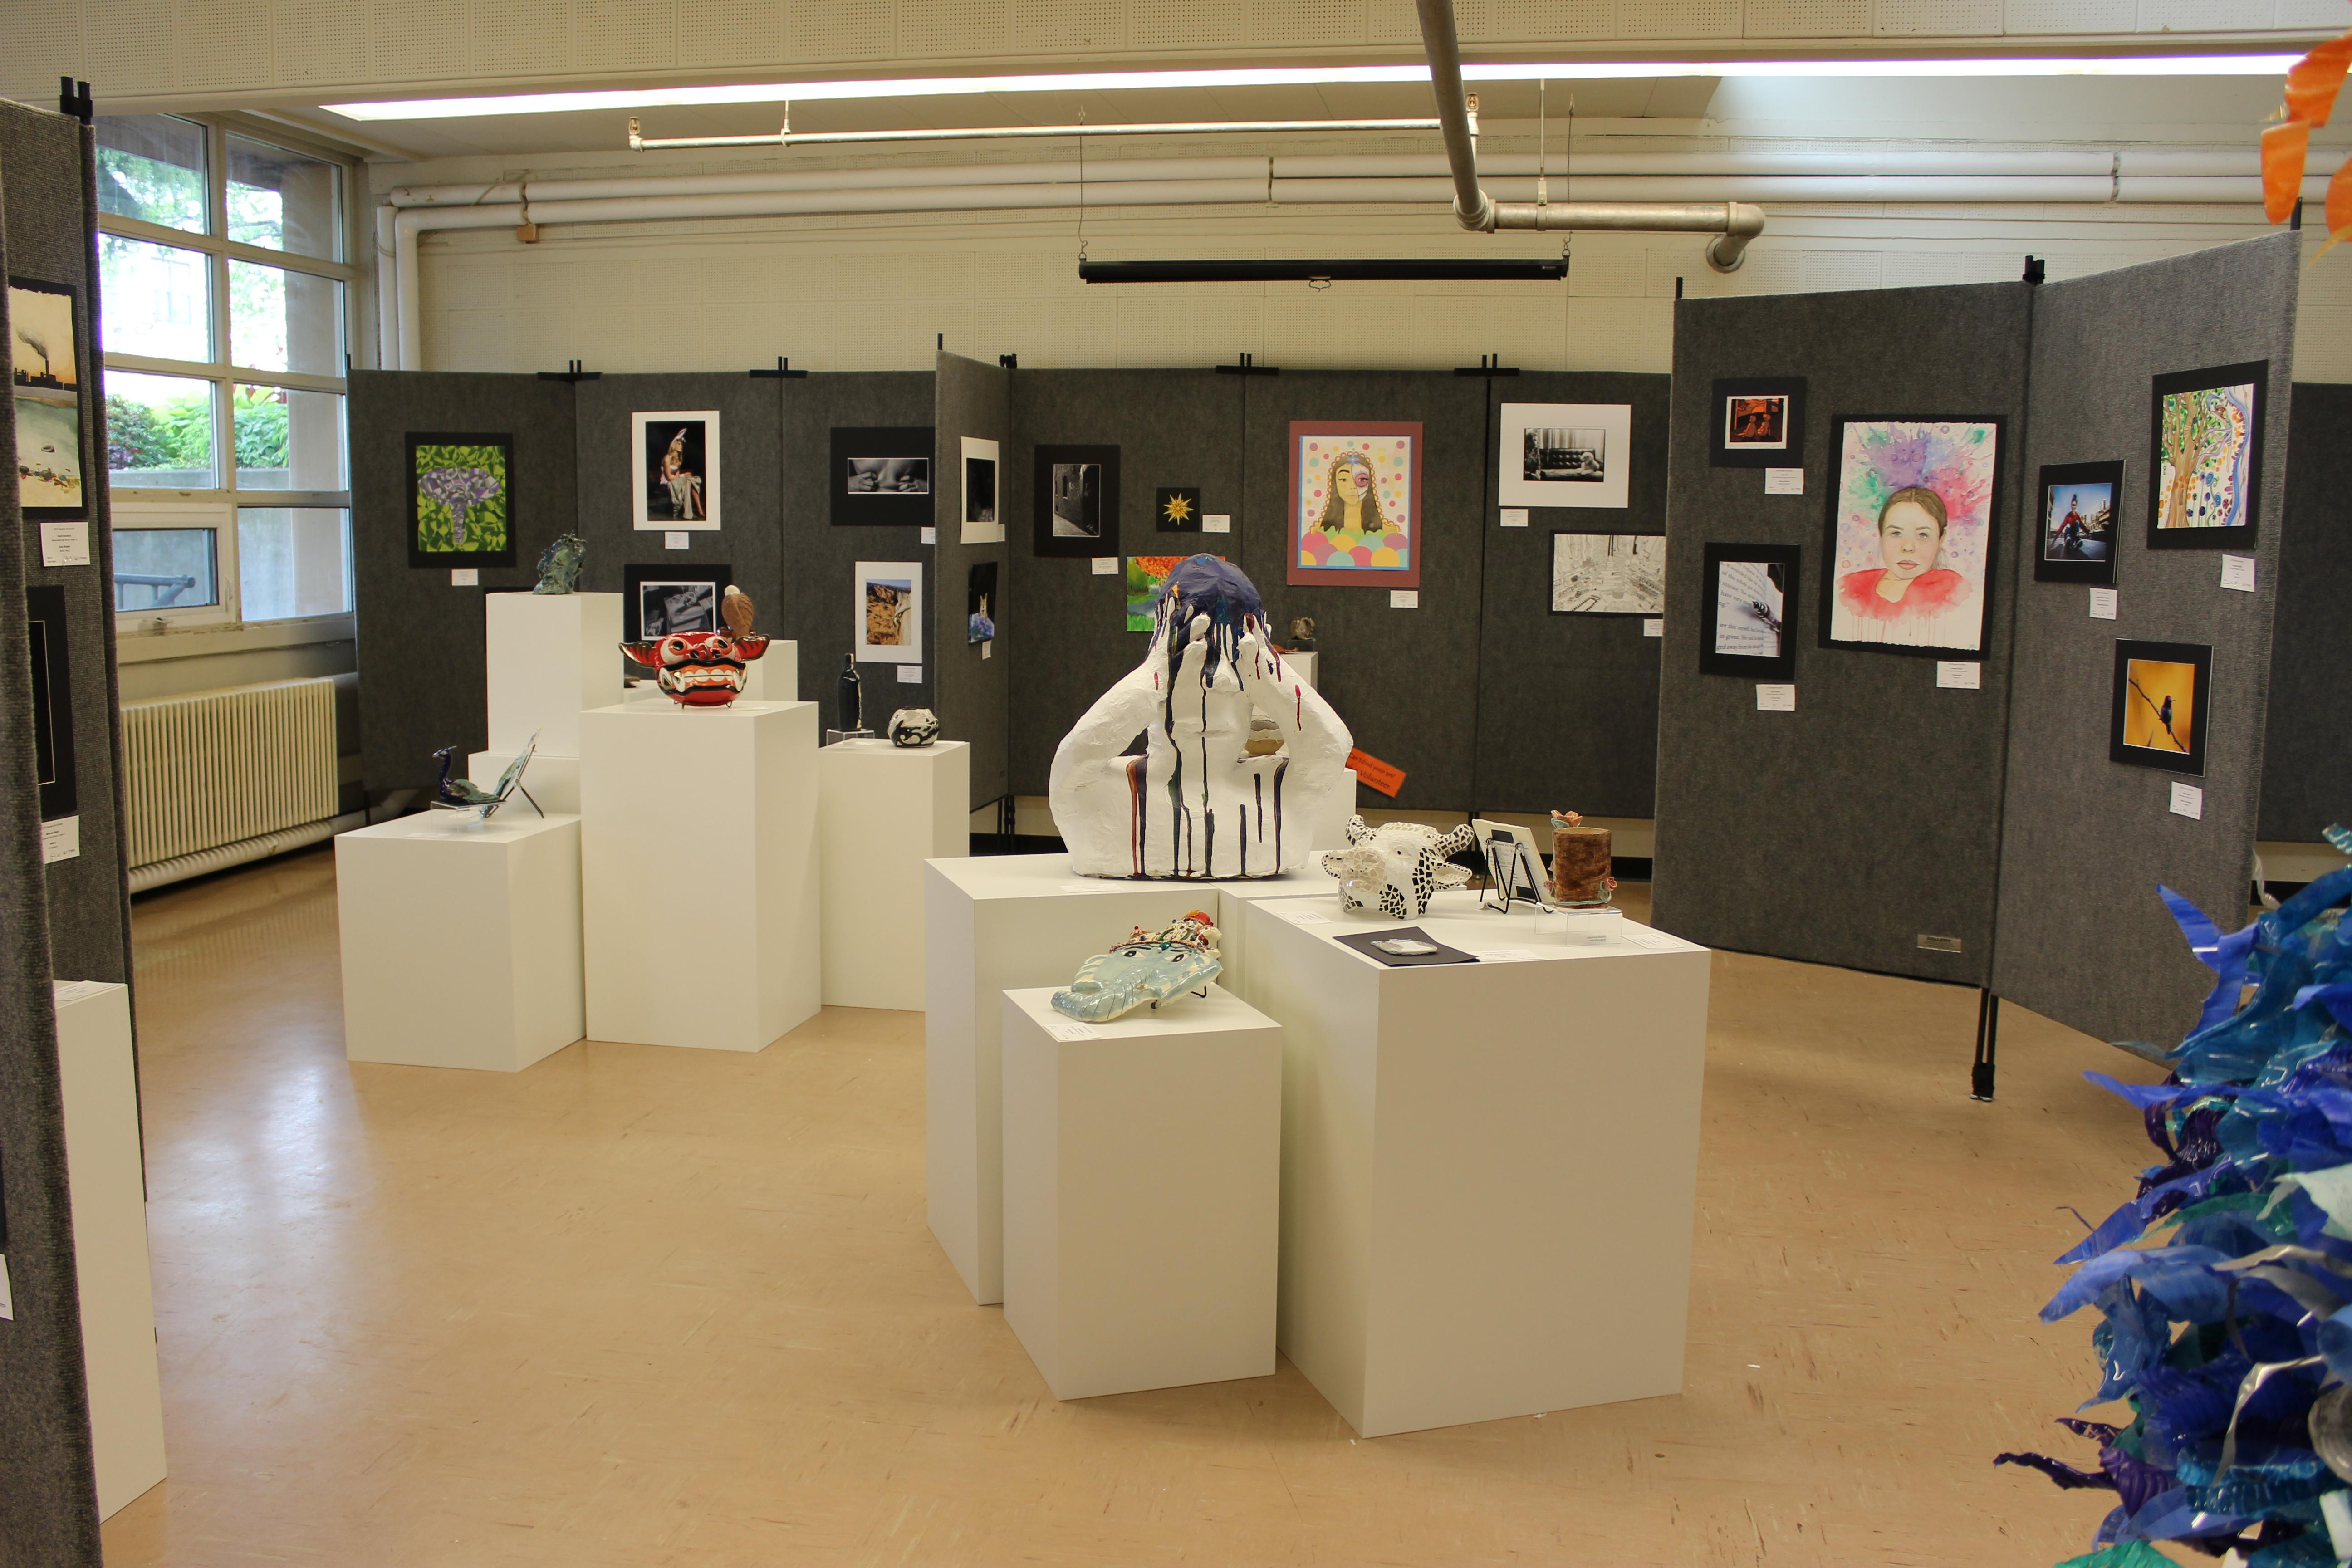 The Edmonds Arts Festival is taking place June 14-16, 2019 at the Frances Anderson Center in downtown Edmonds! Stop by on Friday and Saturday from 10 a.m. to 8 p.m. and Sunday from 10 a.m. to 5 p.m. for the chance to see more than 240  artists sell their original creations, performing arts, festival food, and more! Visit www.edmondsartsfestival.com for more information. (Photo provided by The Edmonds Arts Festival)